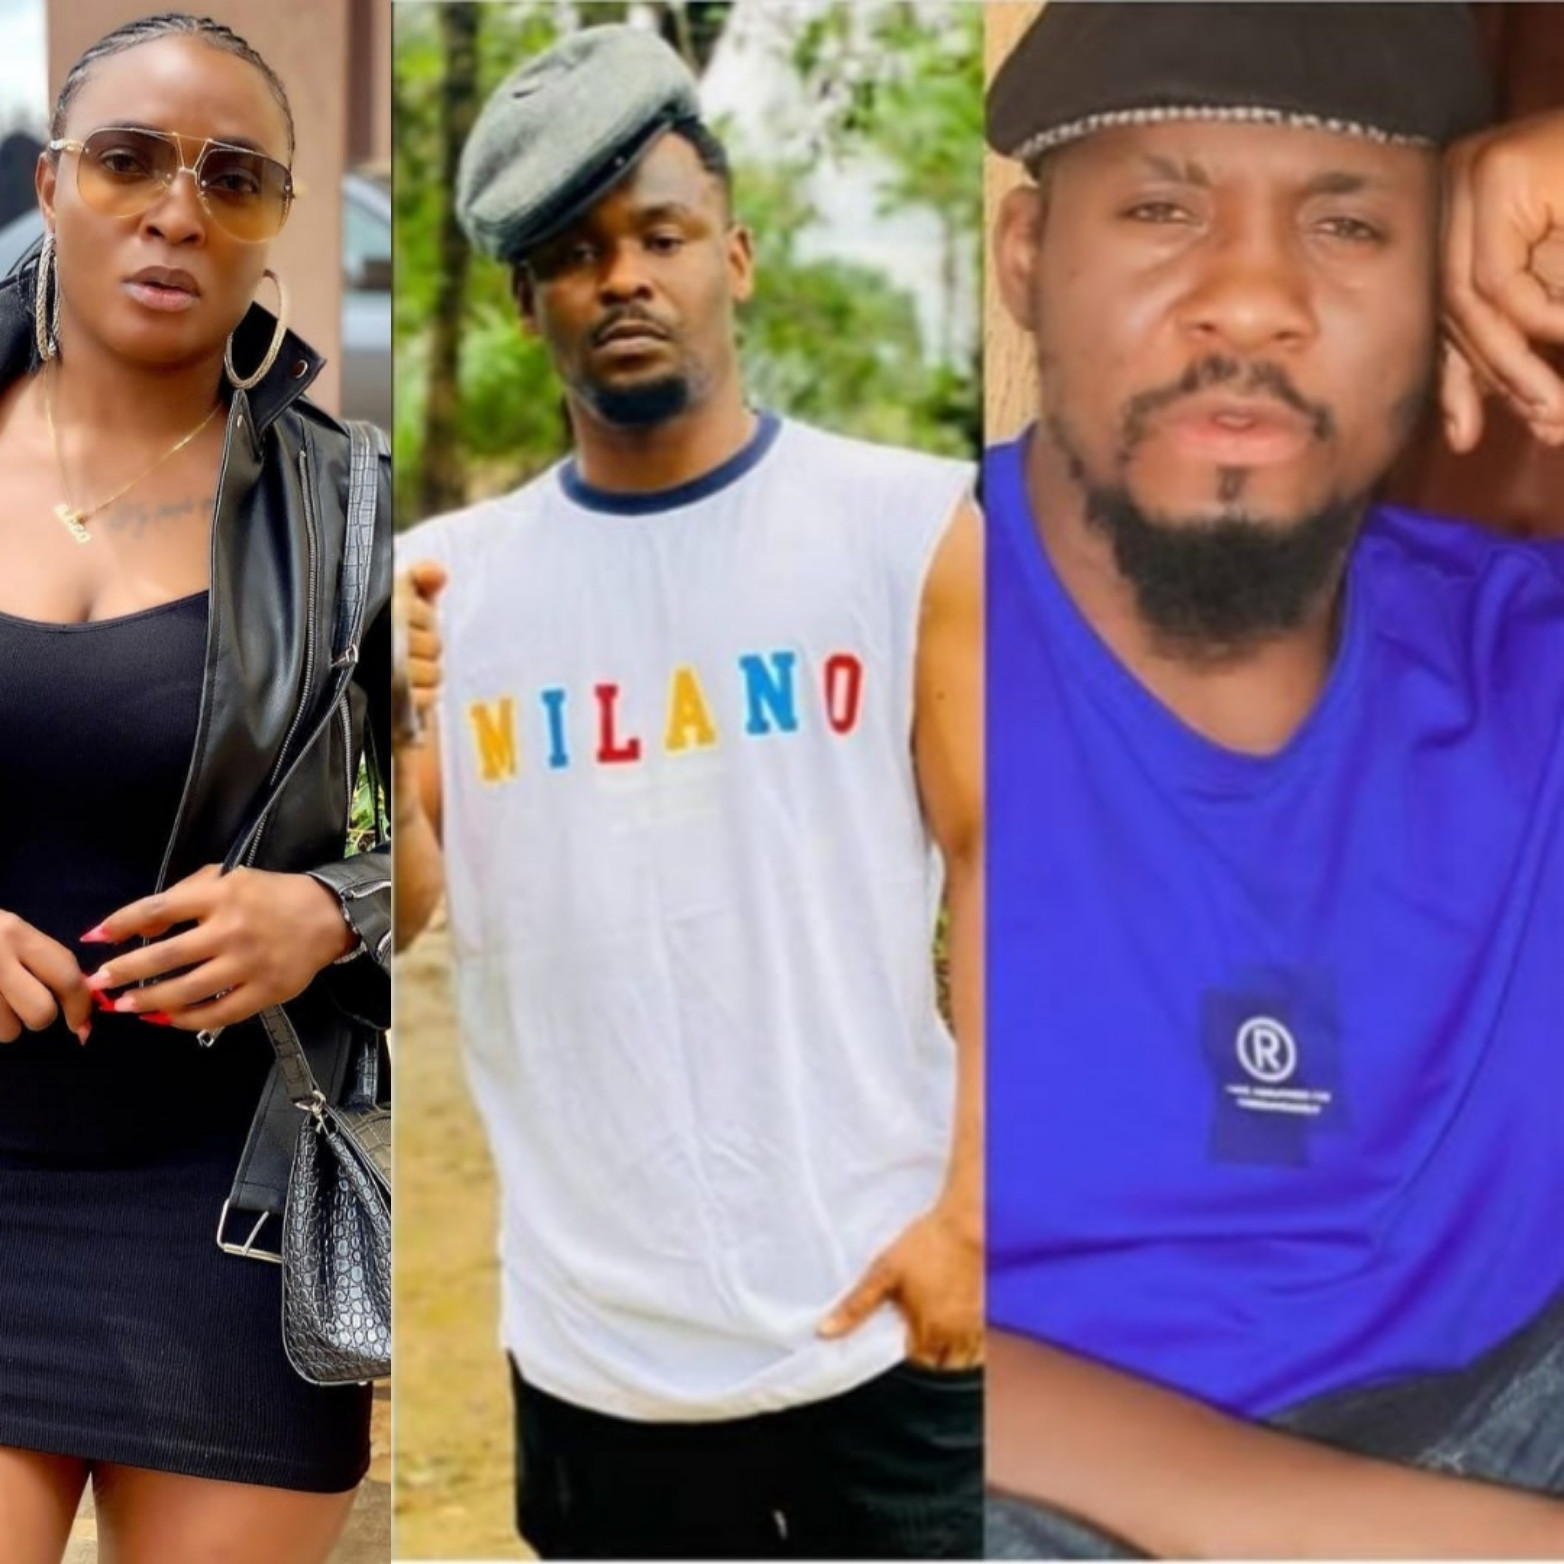 Blessing Okoro reacts to Junior Pope and Zubby Michael's post criticising Annie Idibia for making marriage crises public; Junior Pope responds